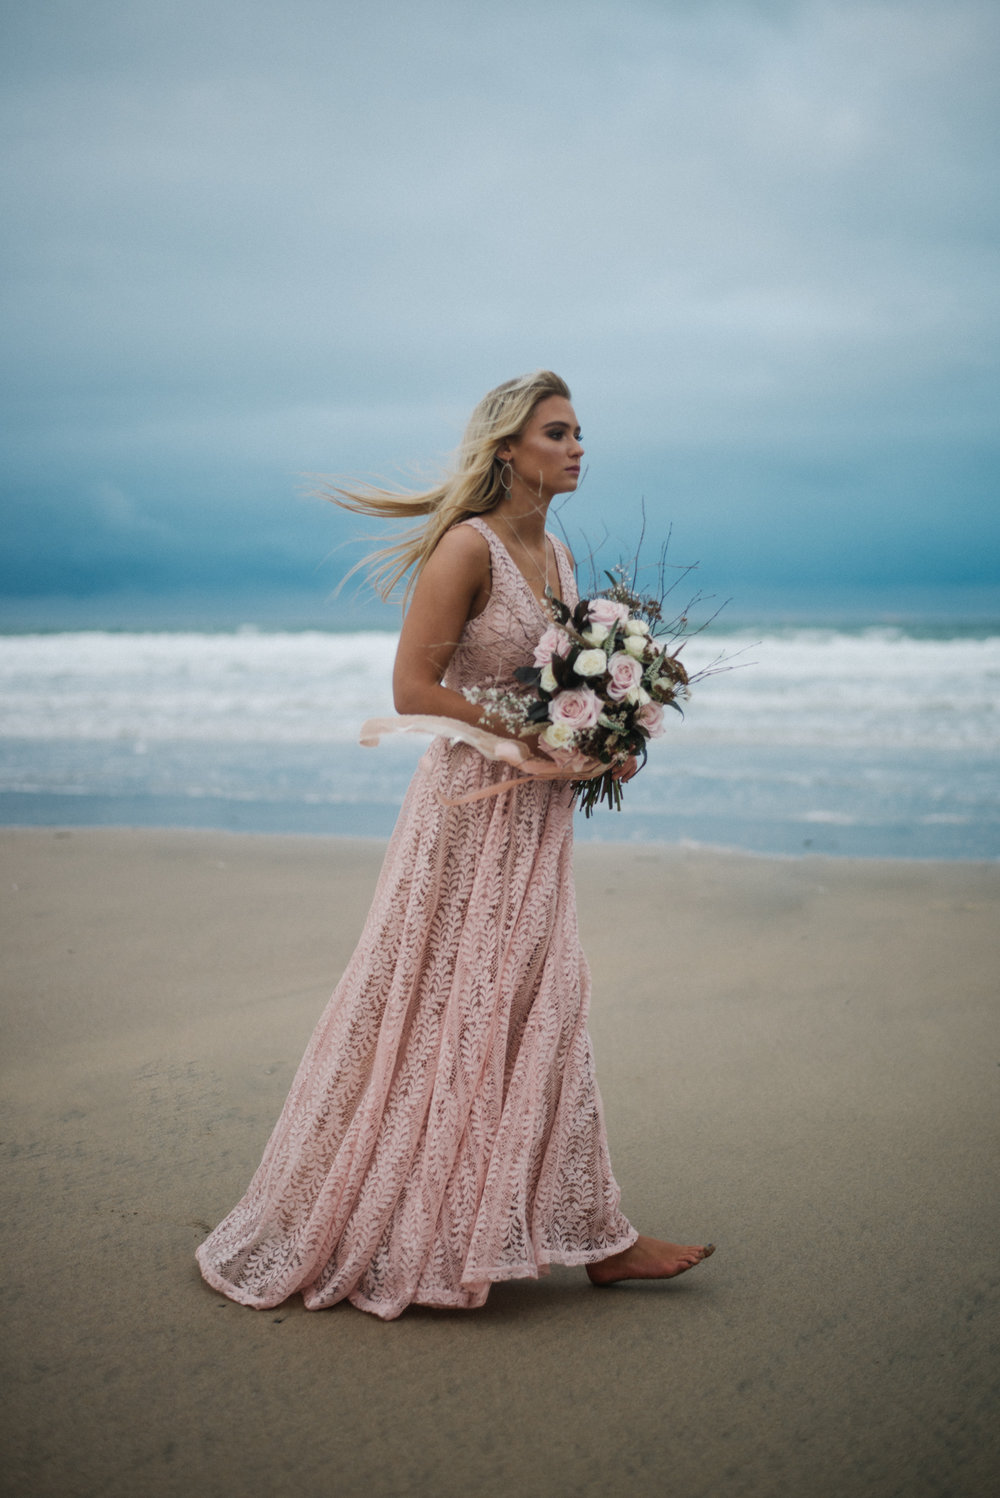 The Best Photoshoot Locations in Cornwall // Gwithian // www.oliviabossert.com